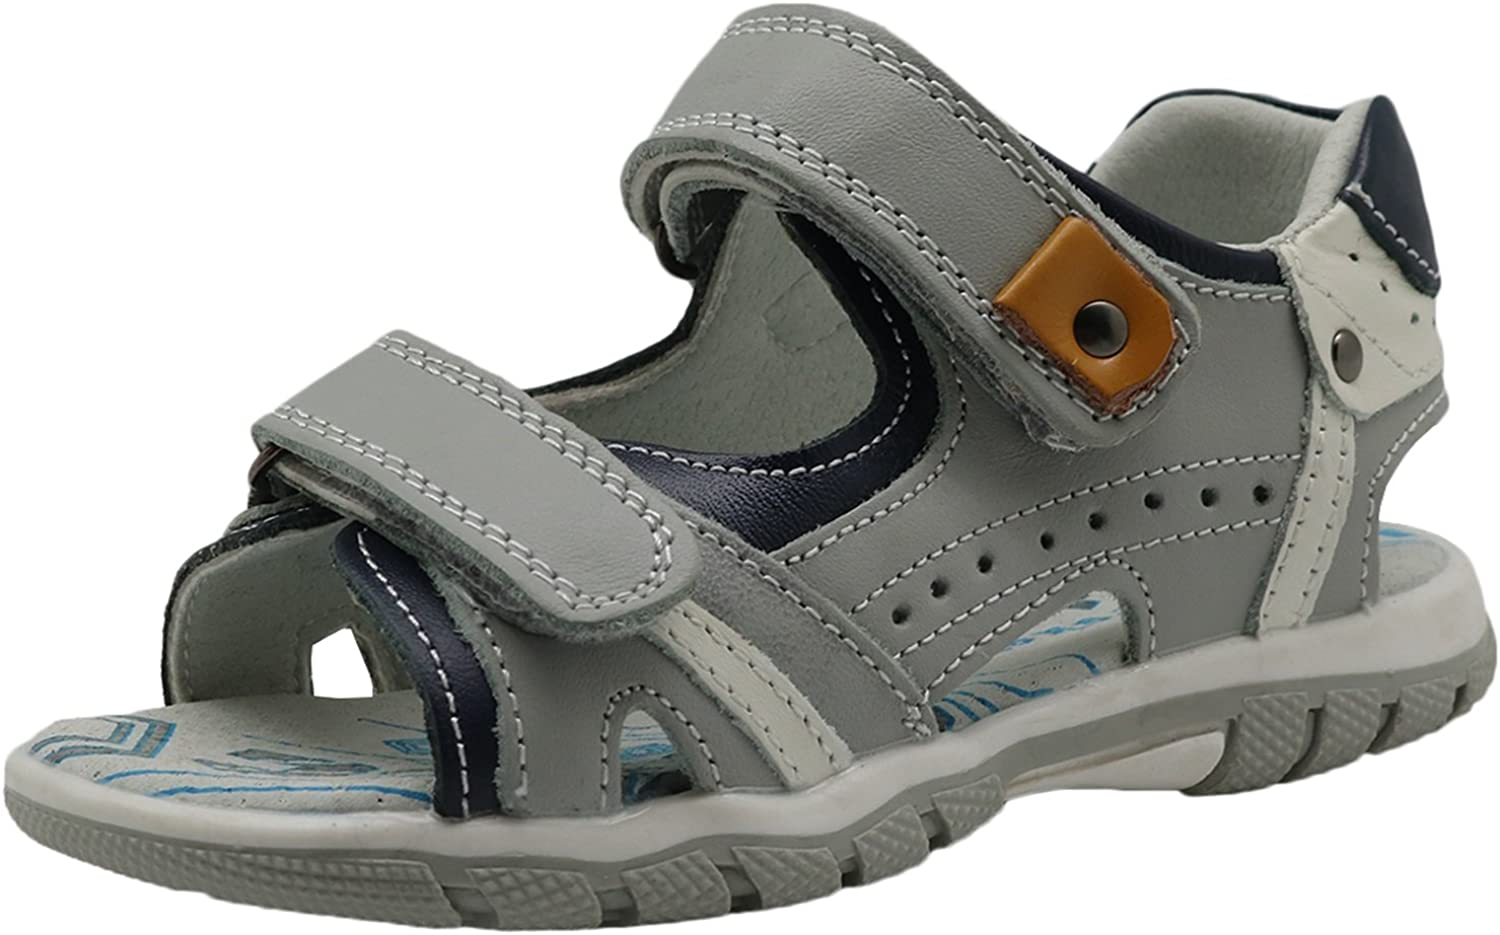 Boy's Double Adjustable Strap Leather Sandals with Arch Support (Toddler Kid) (color   Grey330, Size   11.5 M US Little Kid)